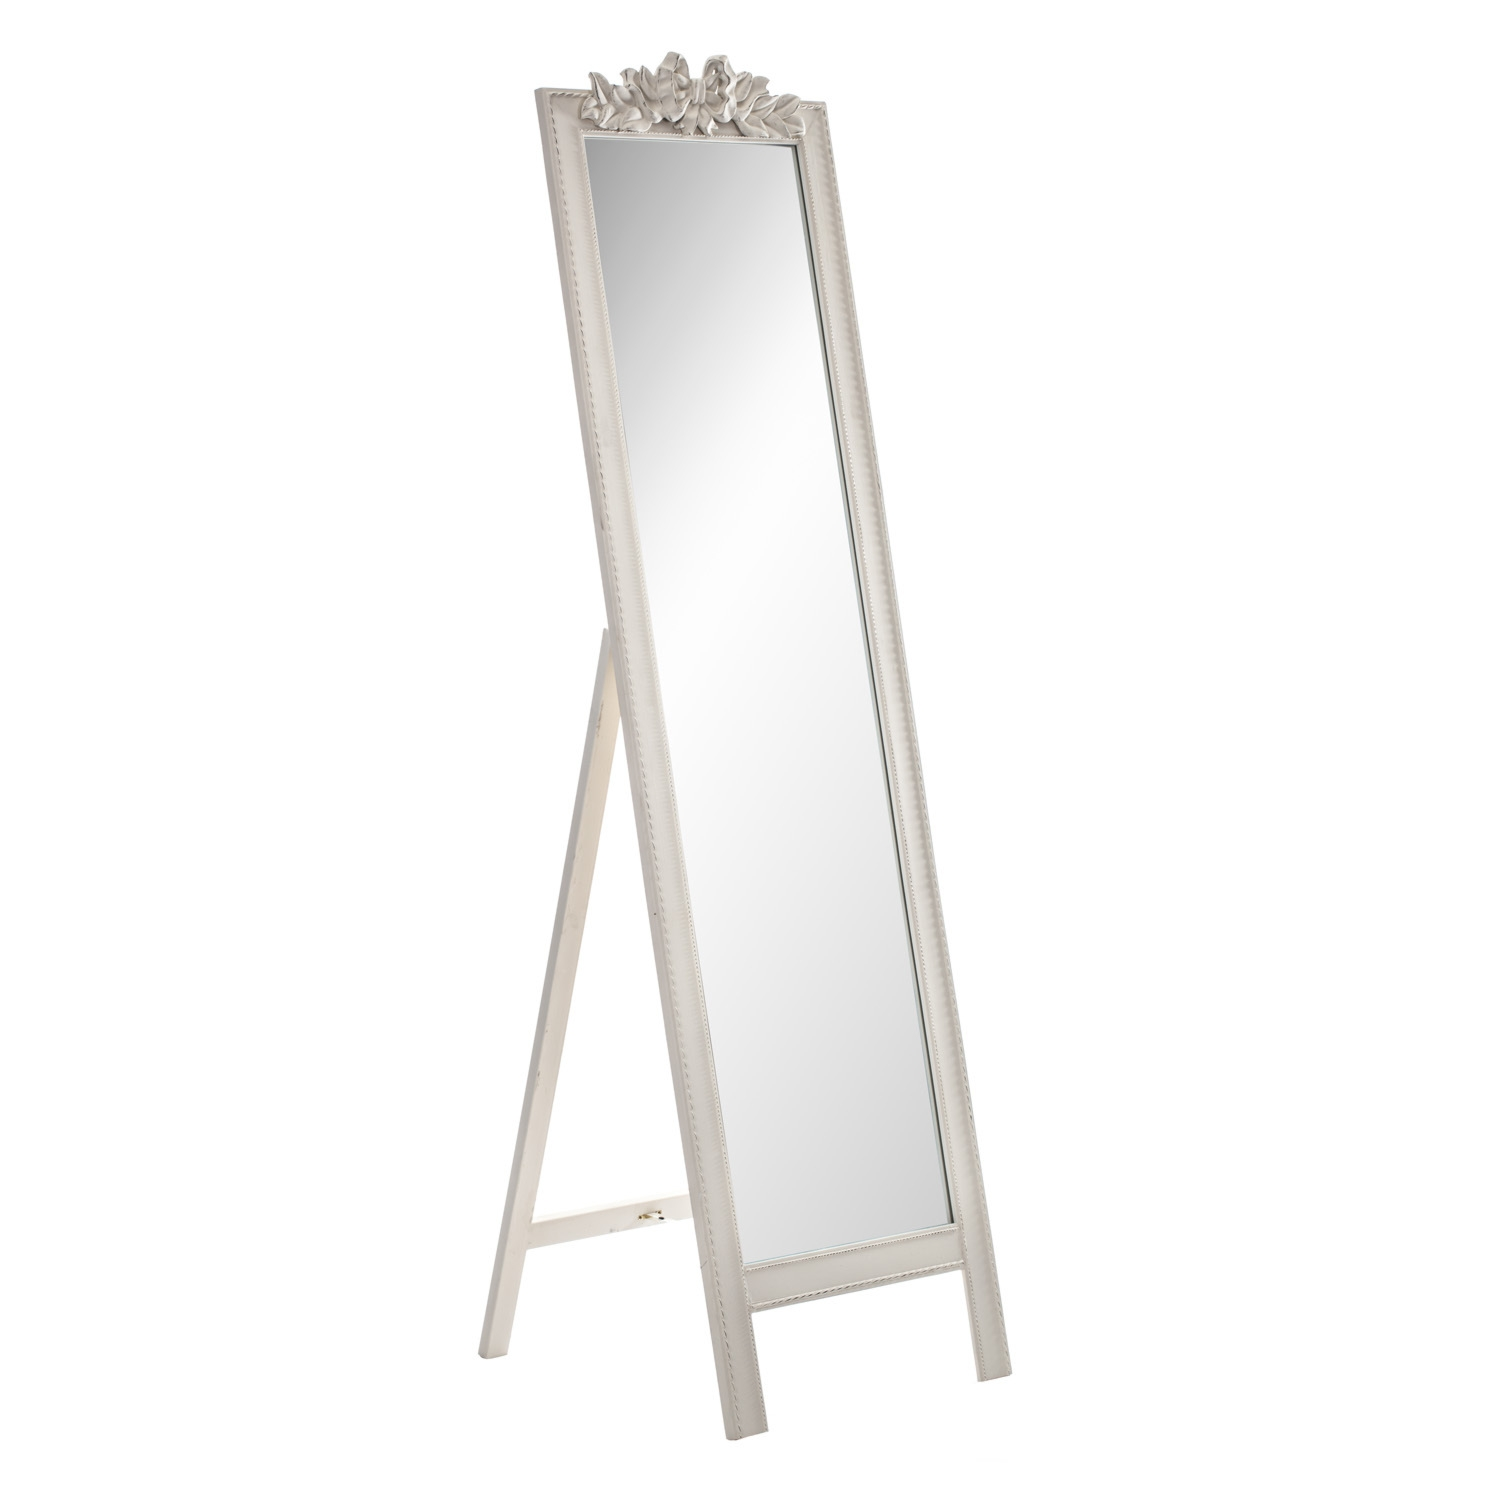 Free Standing Floor Mirrors The Range Pertaining To Vintage Free Standing Mirrors (Image 6 of 15)